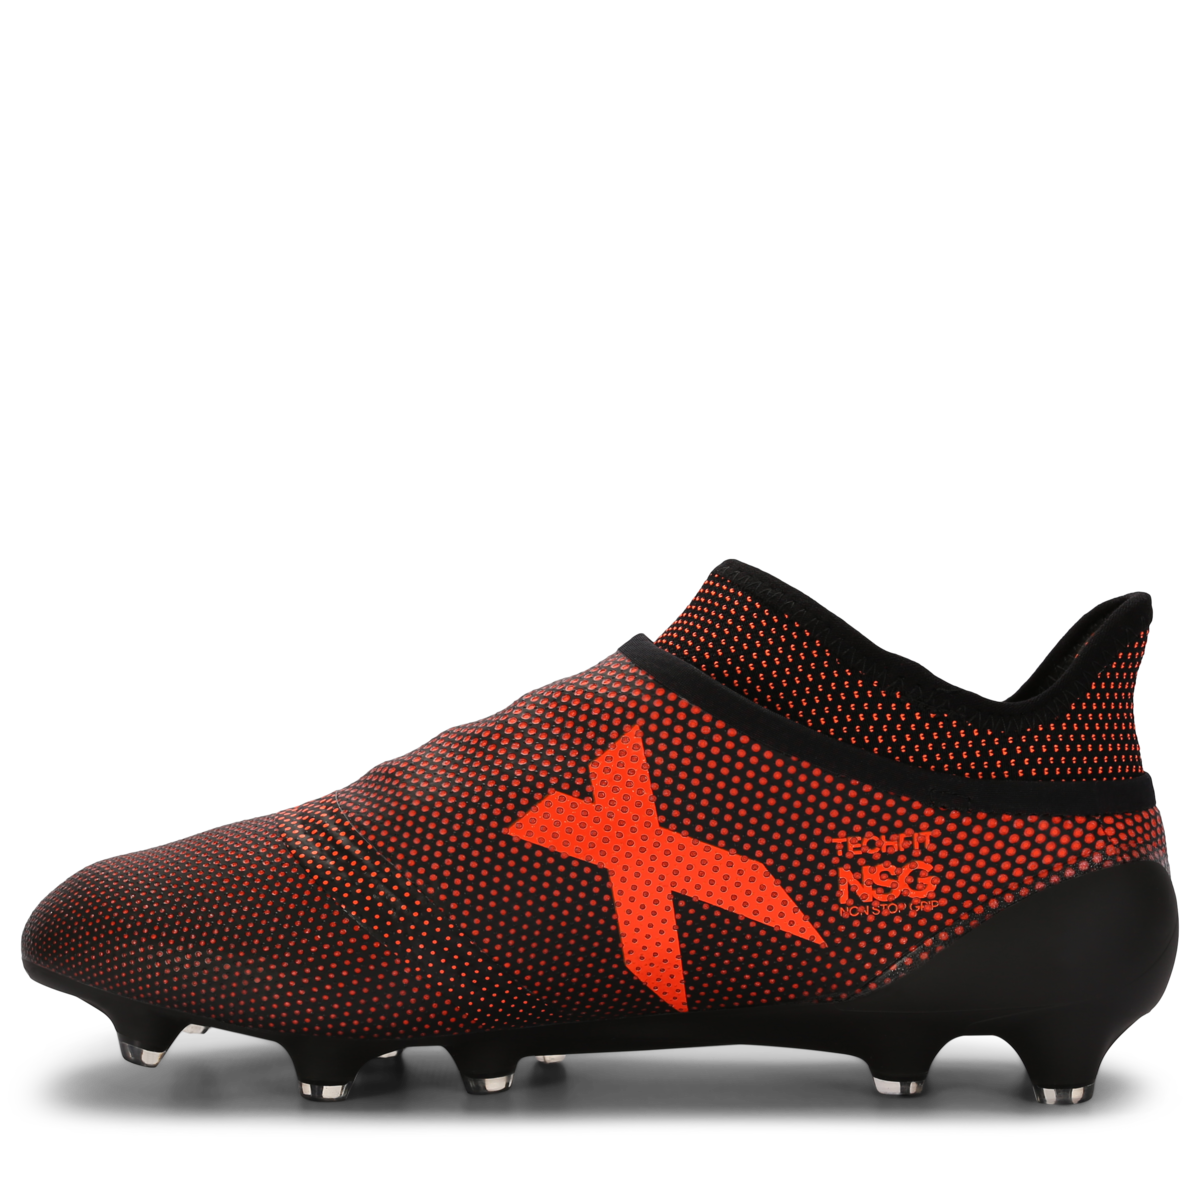 Adidas Football boots X 17+ Purespeed FG Pyro Storm Pack